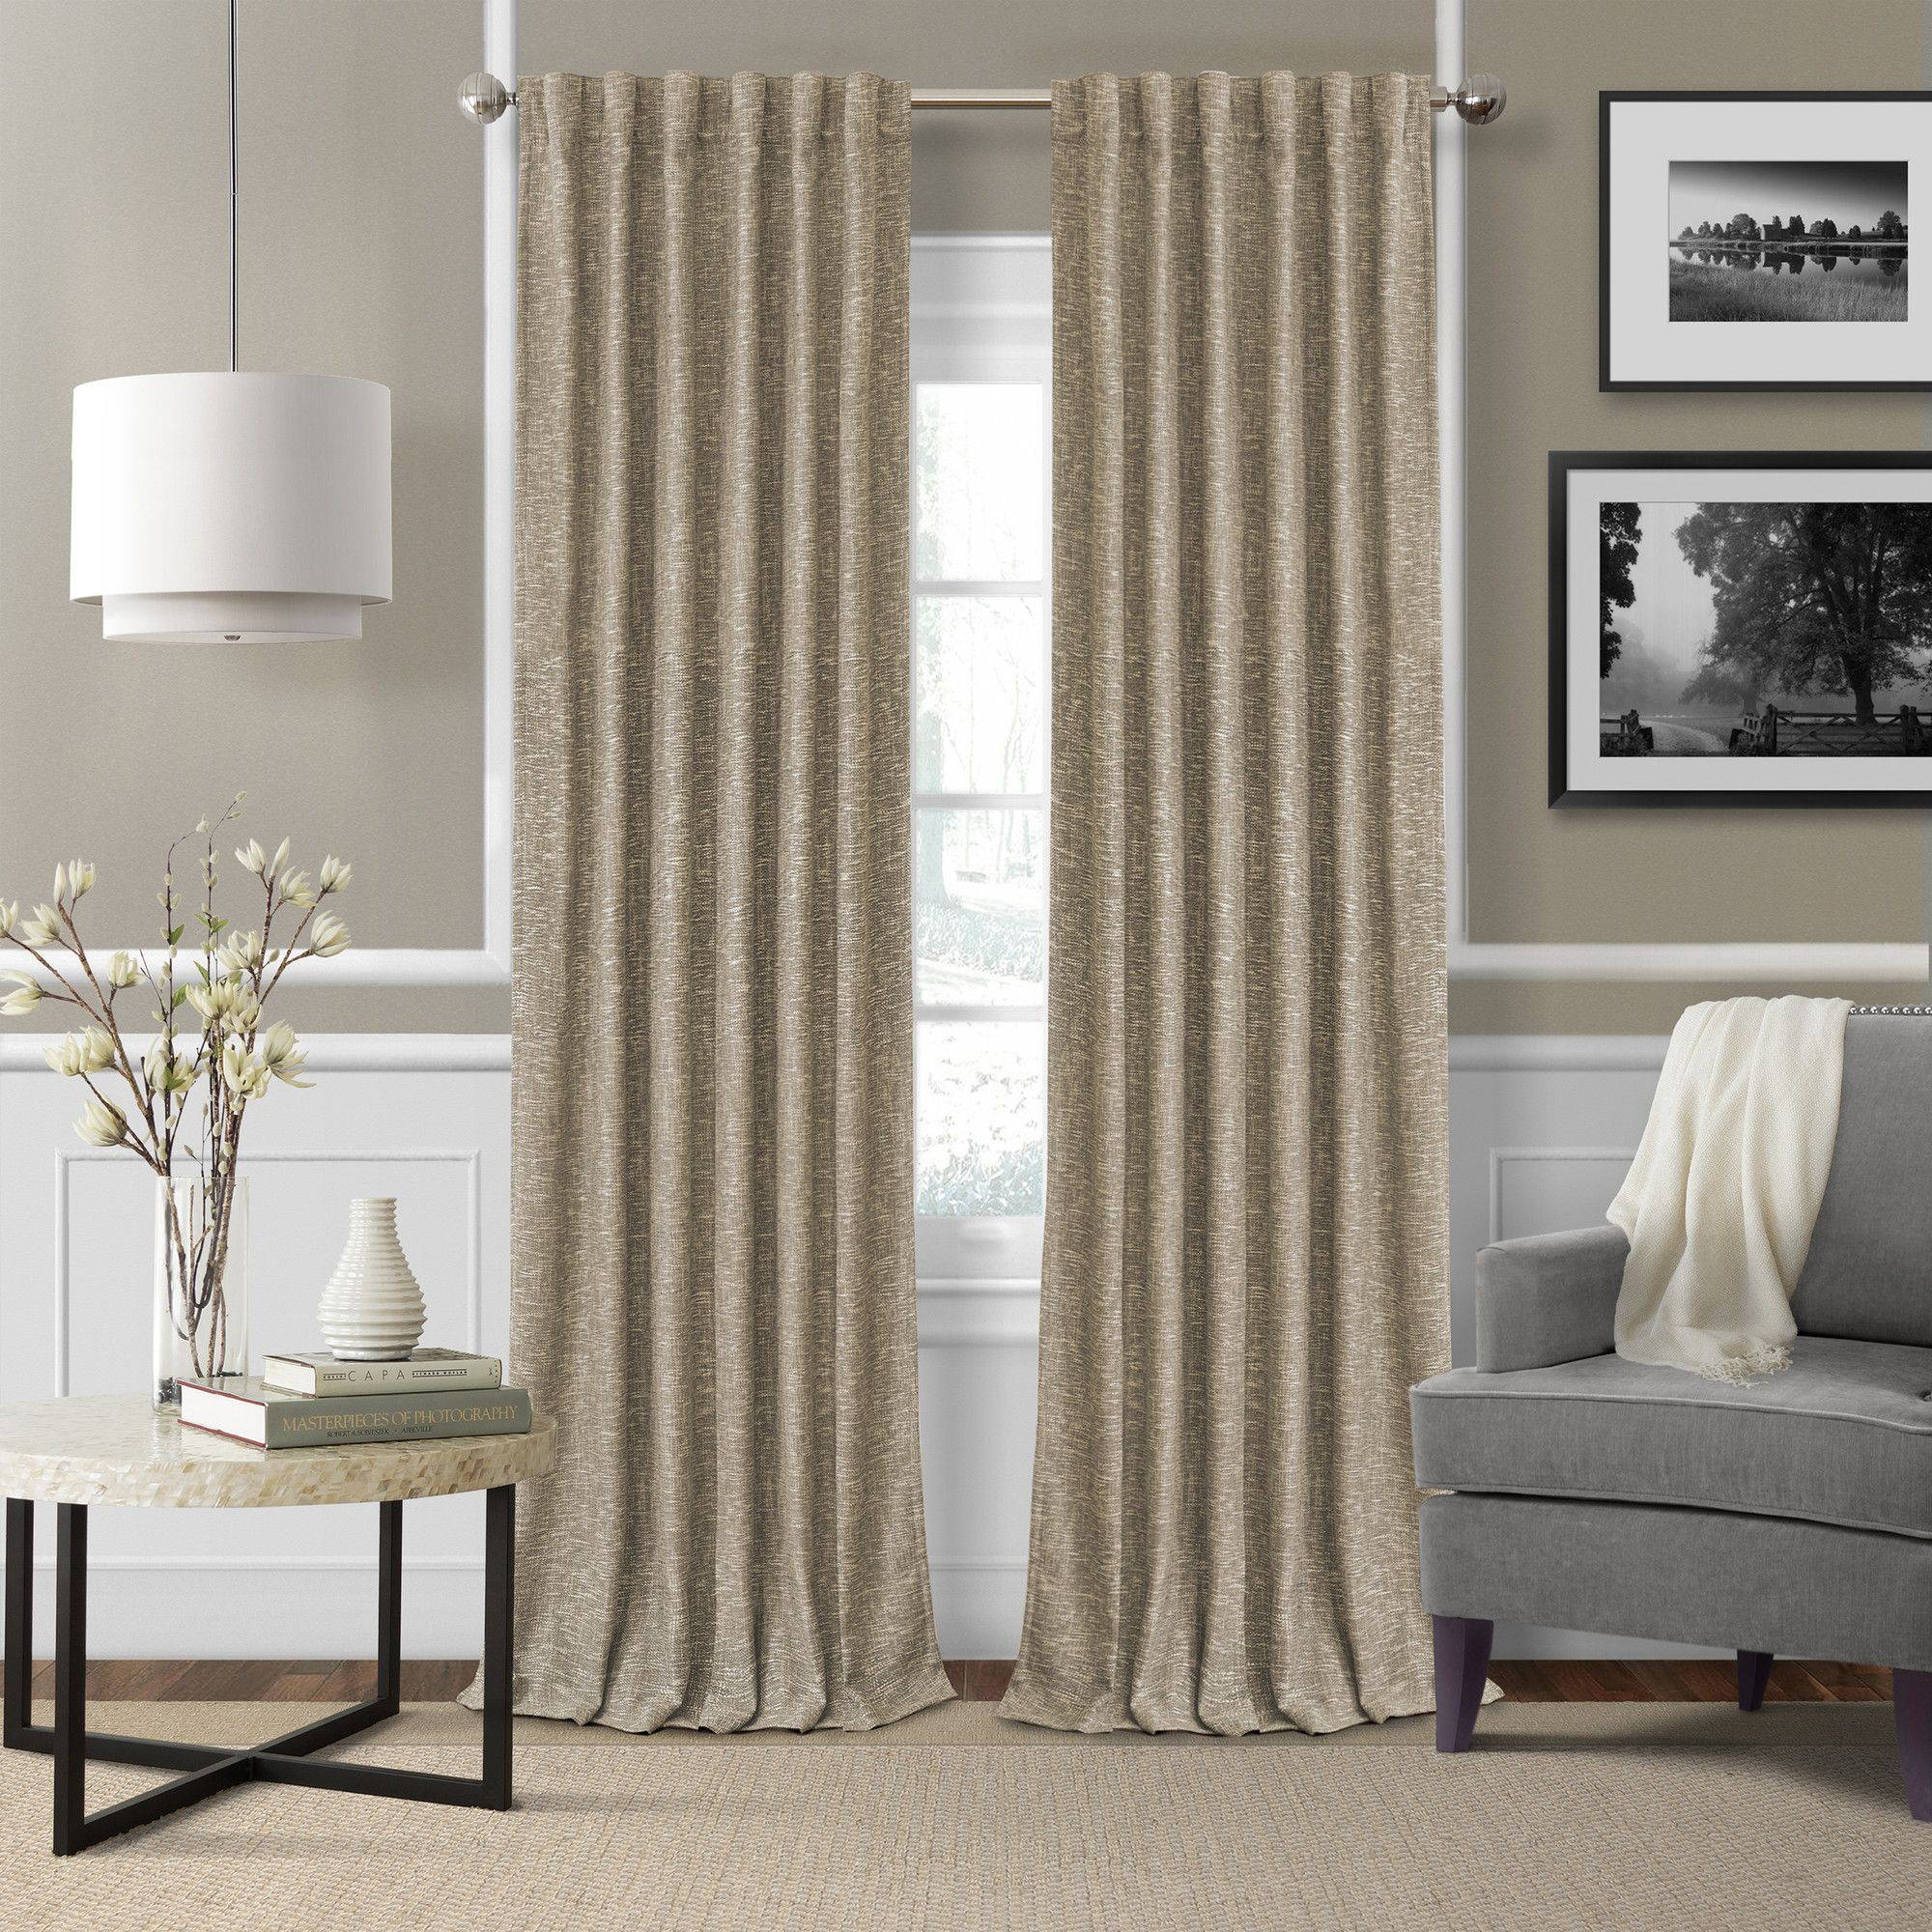 Colton 3 In 1 Blackout Curtain Panel | Products | Panel With Regard To The Gray Barn Kind Koala Curtain Panel Pairs (View 15 of 30)